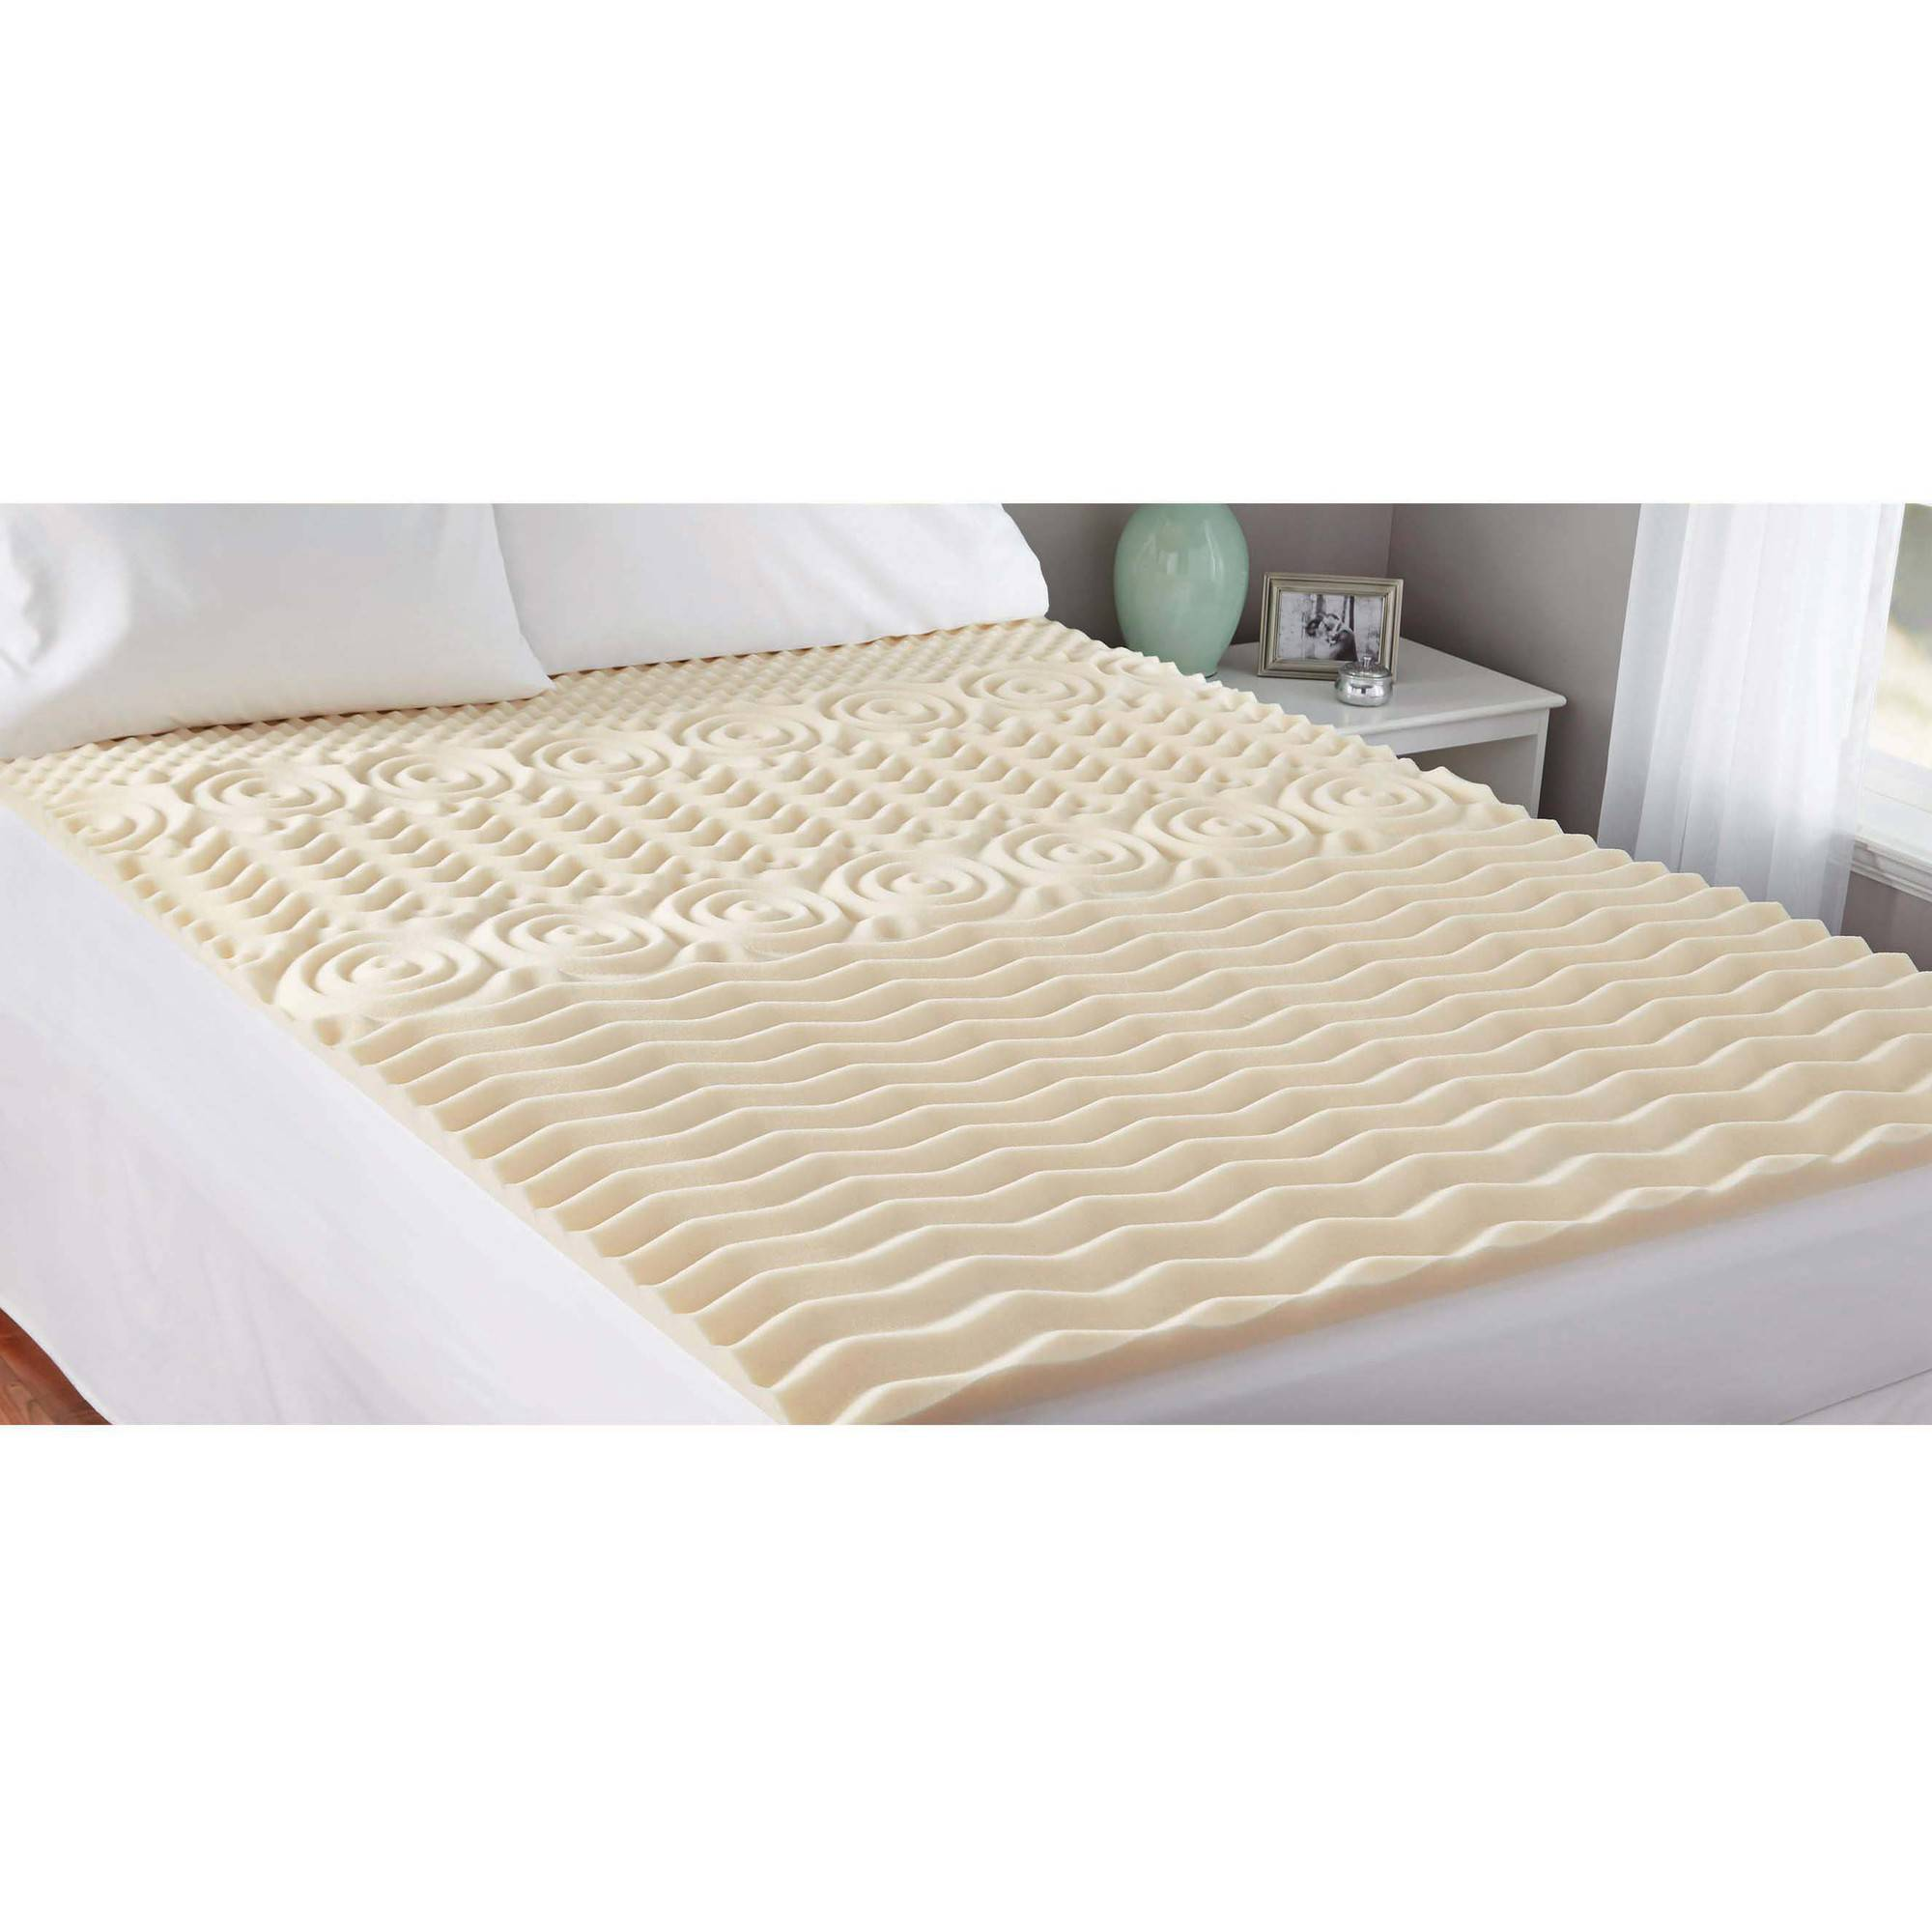 Best place to buy mattress topper